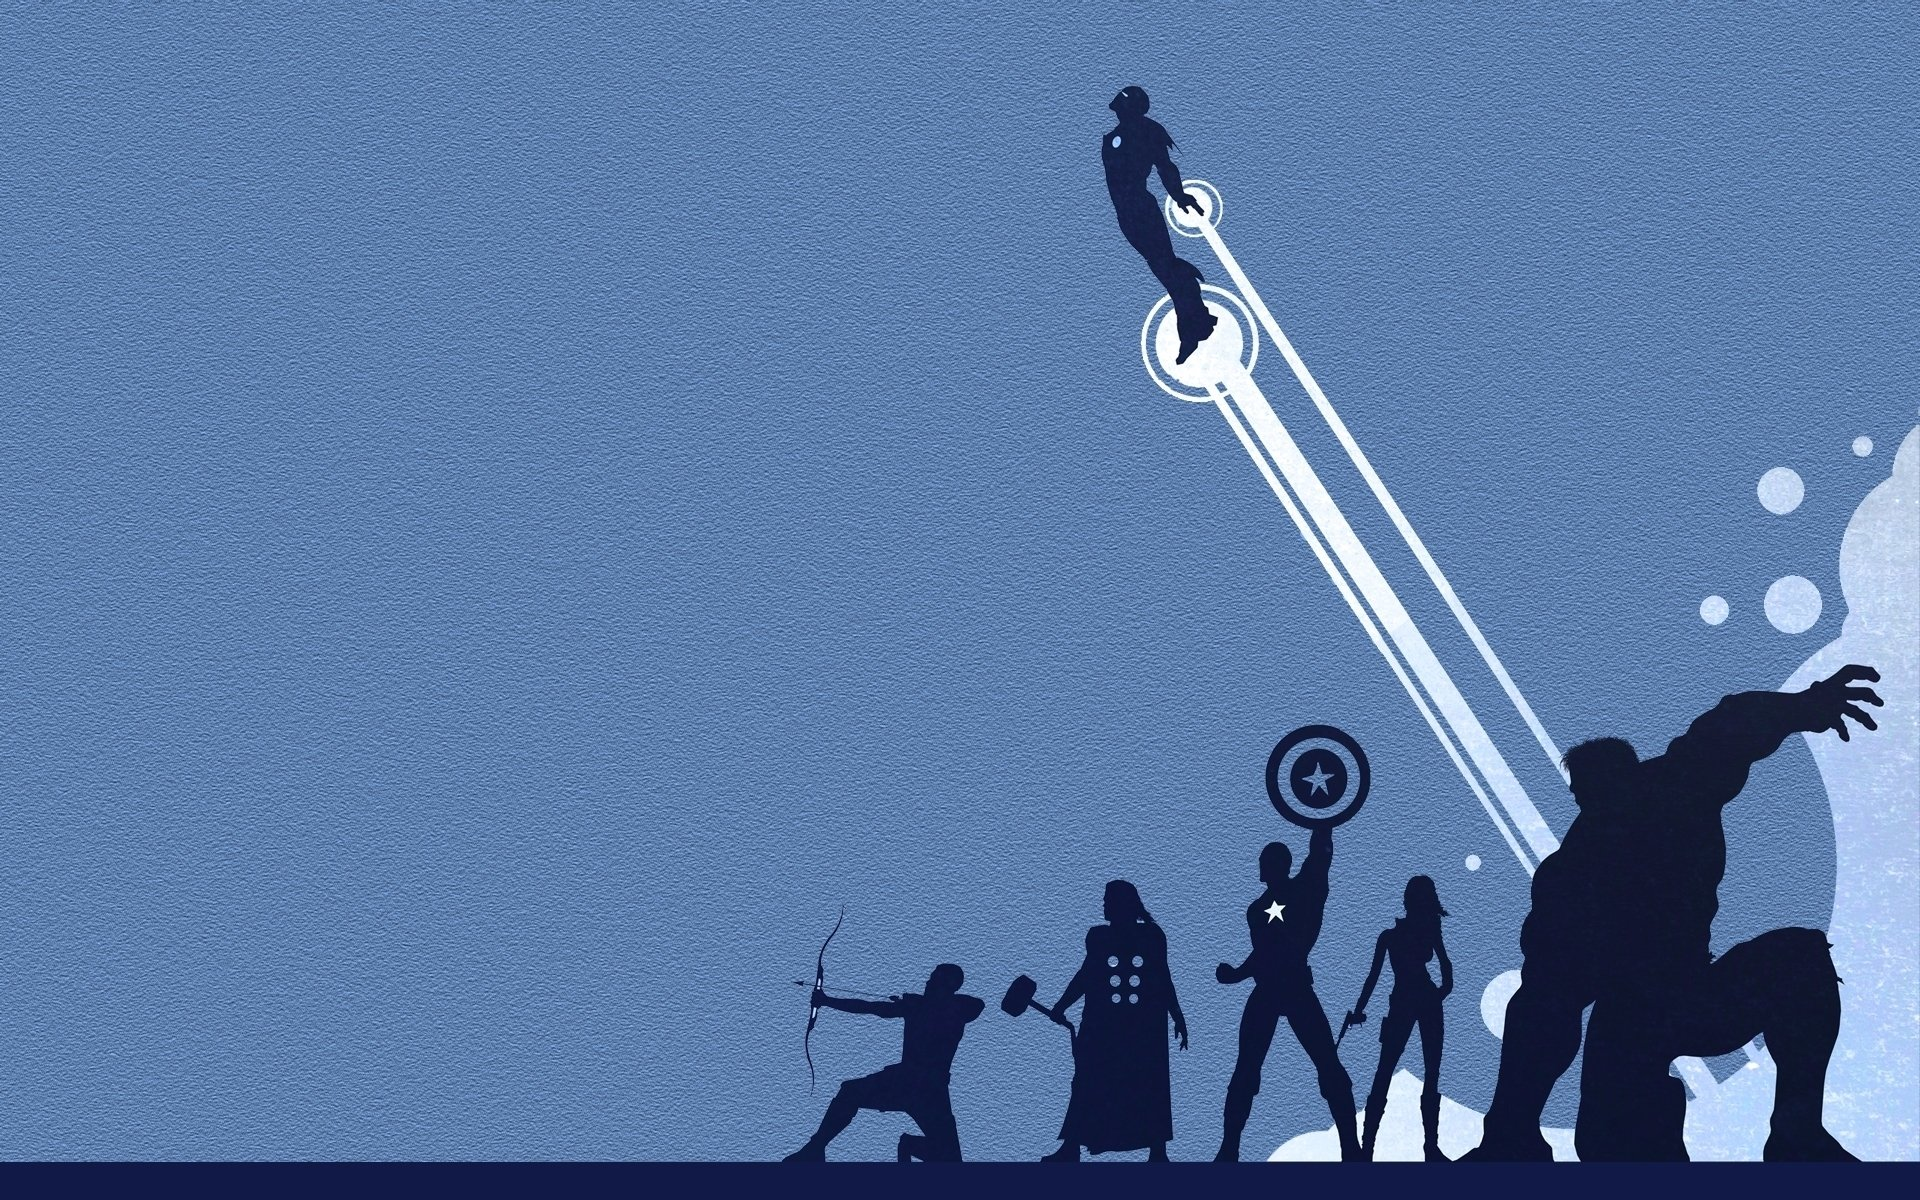 Movie - The Avengers  Wallpaper